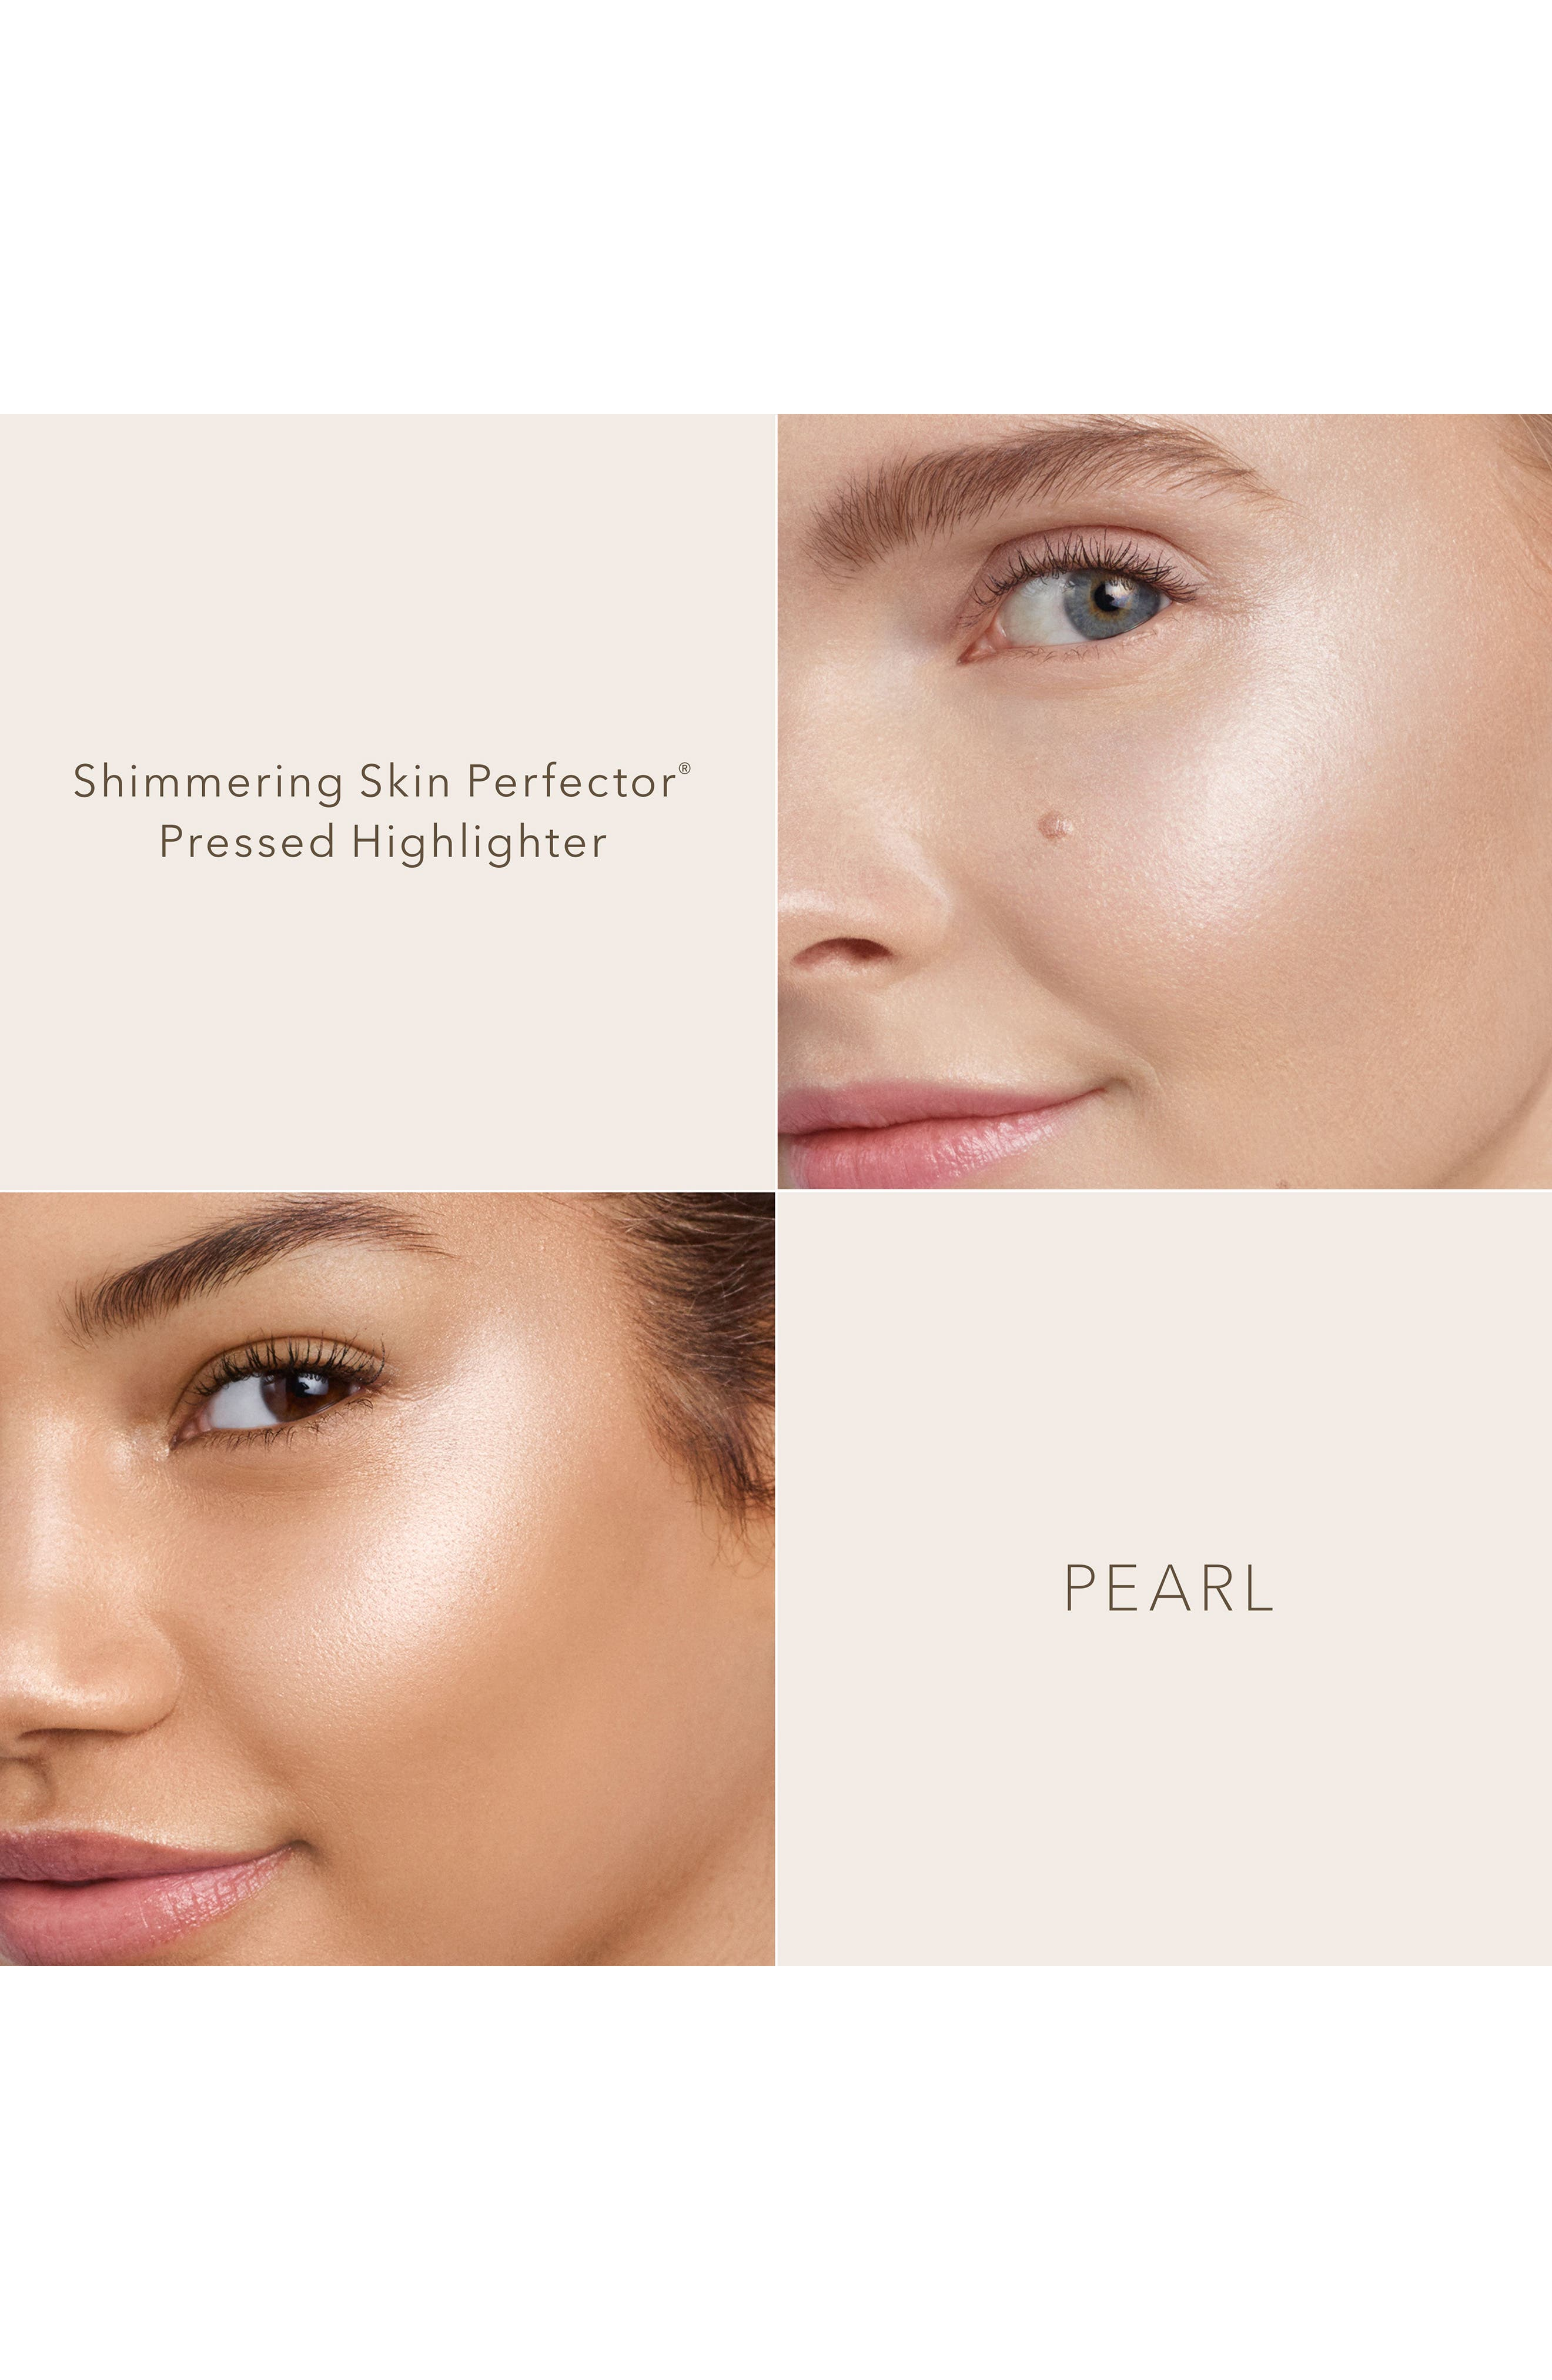 BECCA COSMETICS, BECCA Shimmering Skin Perfector Pressed Highlighter, Alternate thumbnail 4, color, PEARL